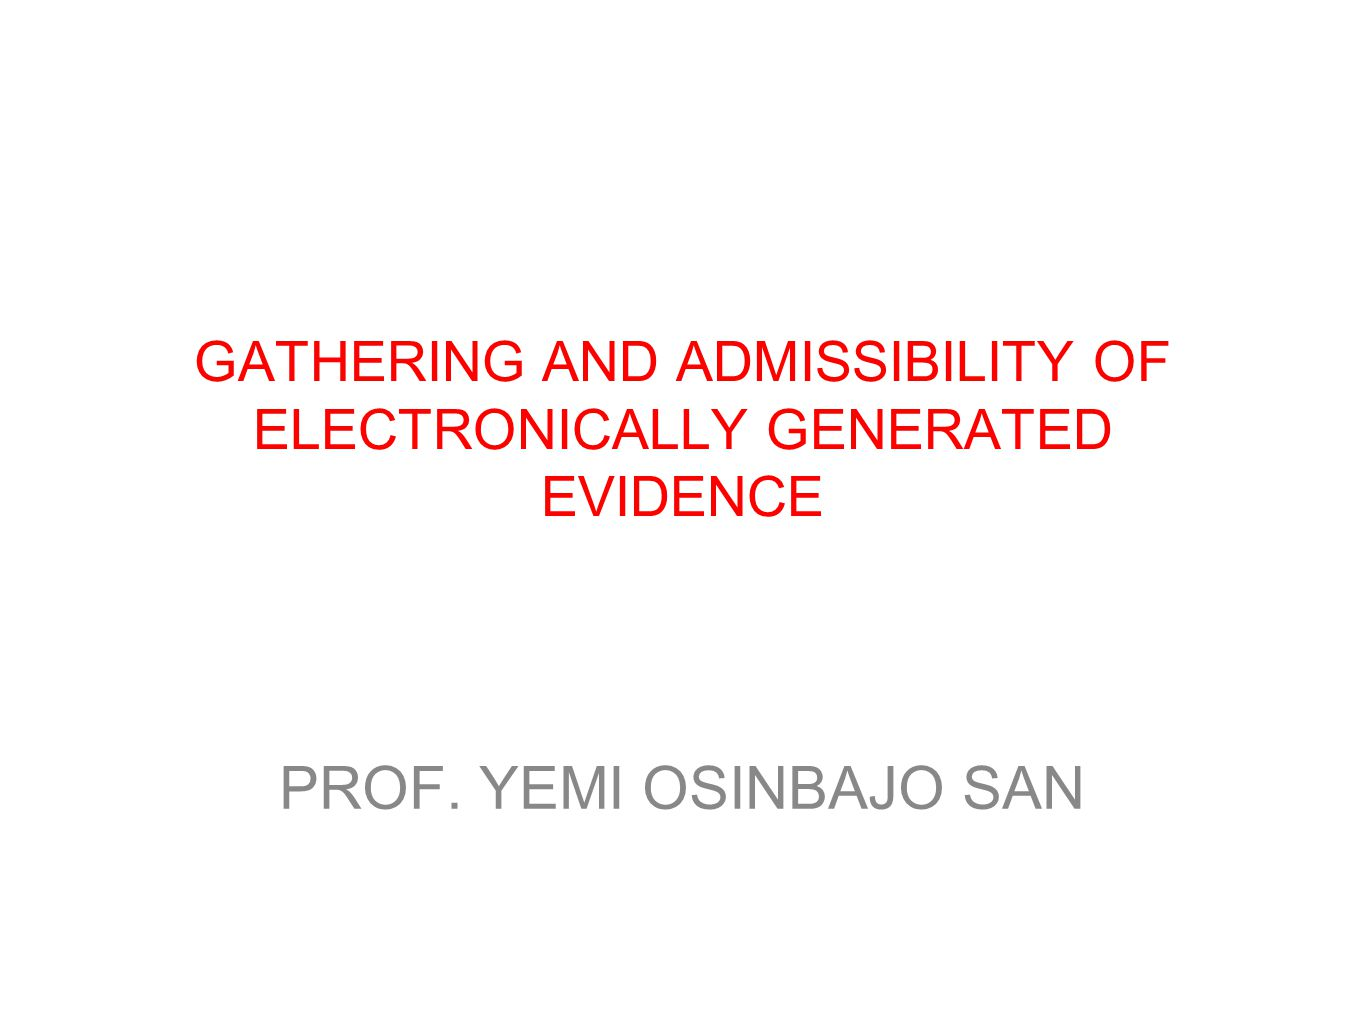 INTRODUCTION NIGERIAN LAW OF EVIDENCE WAS REMARKABLY SLOW IN RECOGNISING THE CHALLENGES OF PROOF OF ELECTRONICALLY –GENERATED EVIDENCE.